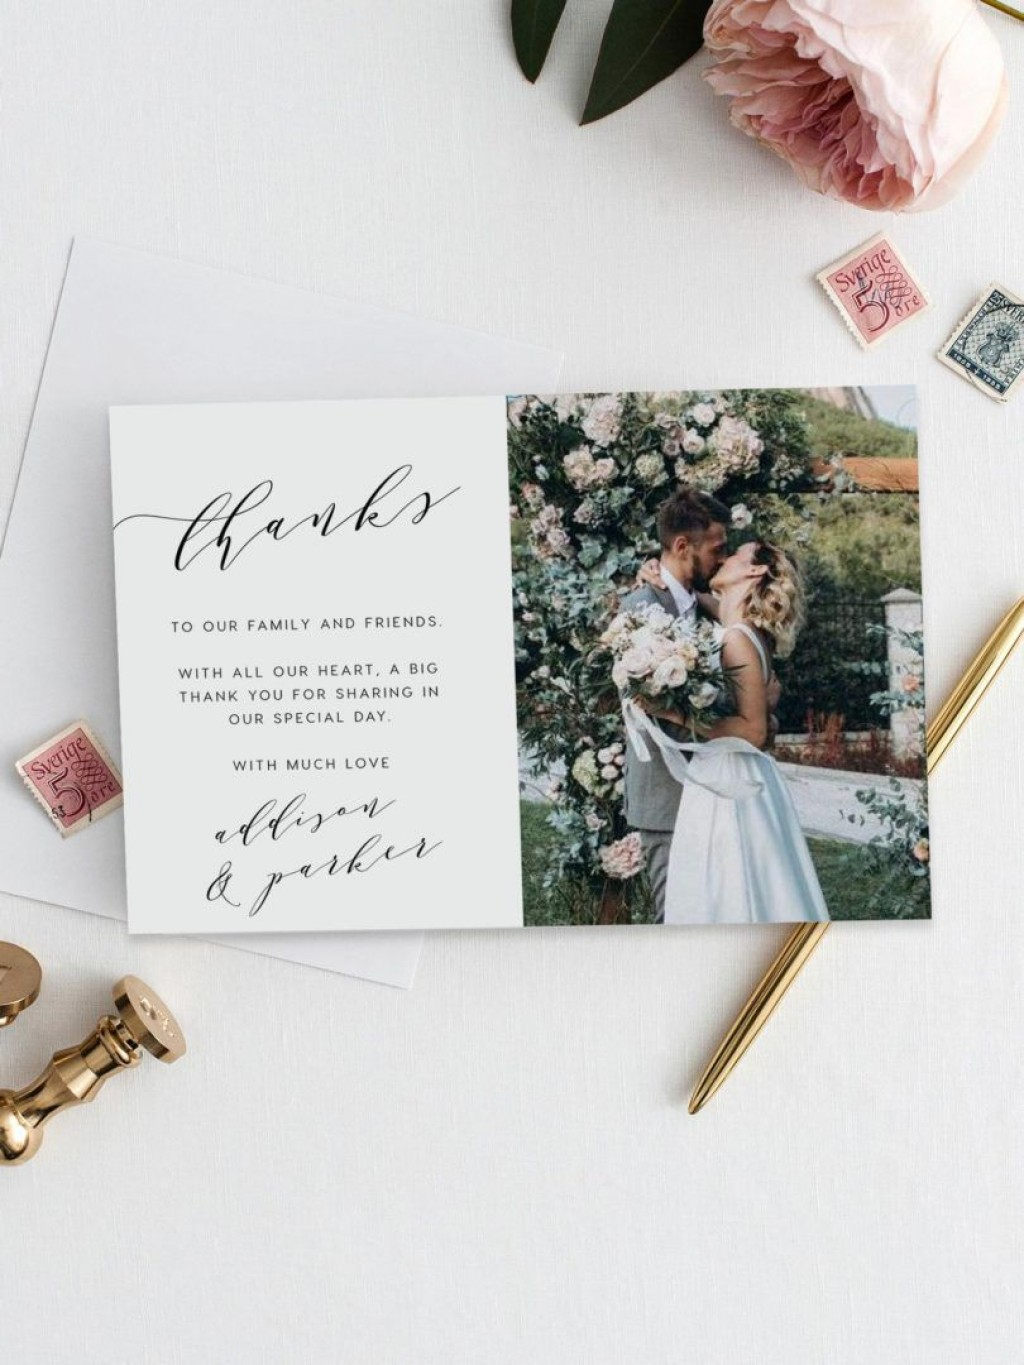 008 Dreaded Thank You Note Format Wedding Highest Quality  Example Card Wording Not Attending Sample For GiftLarge